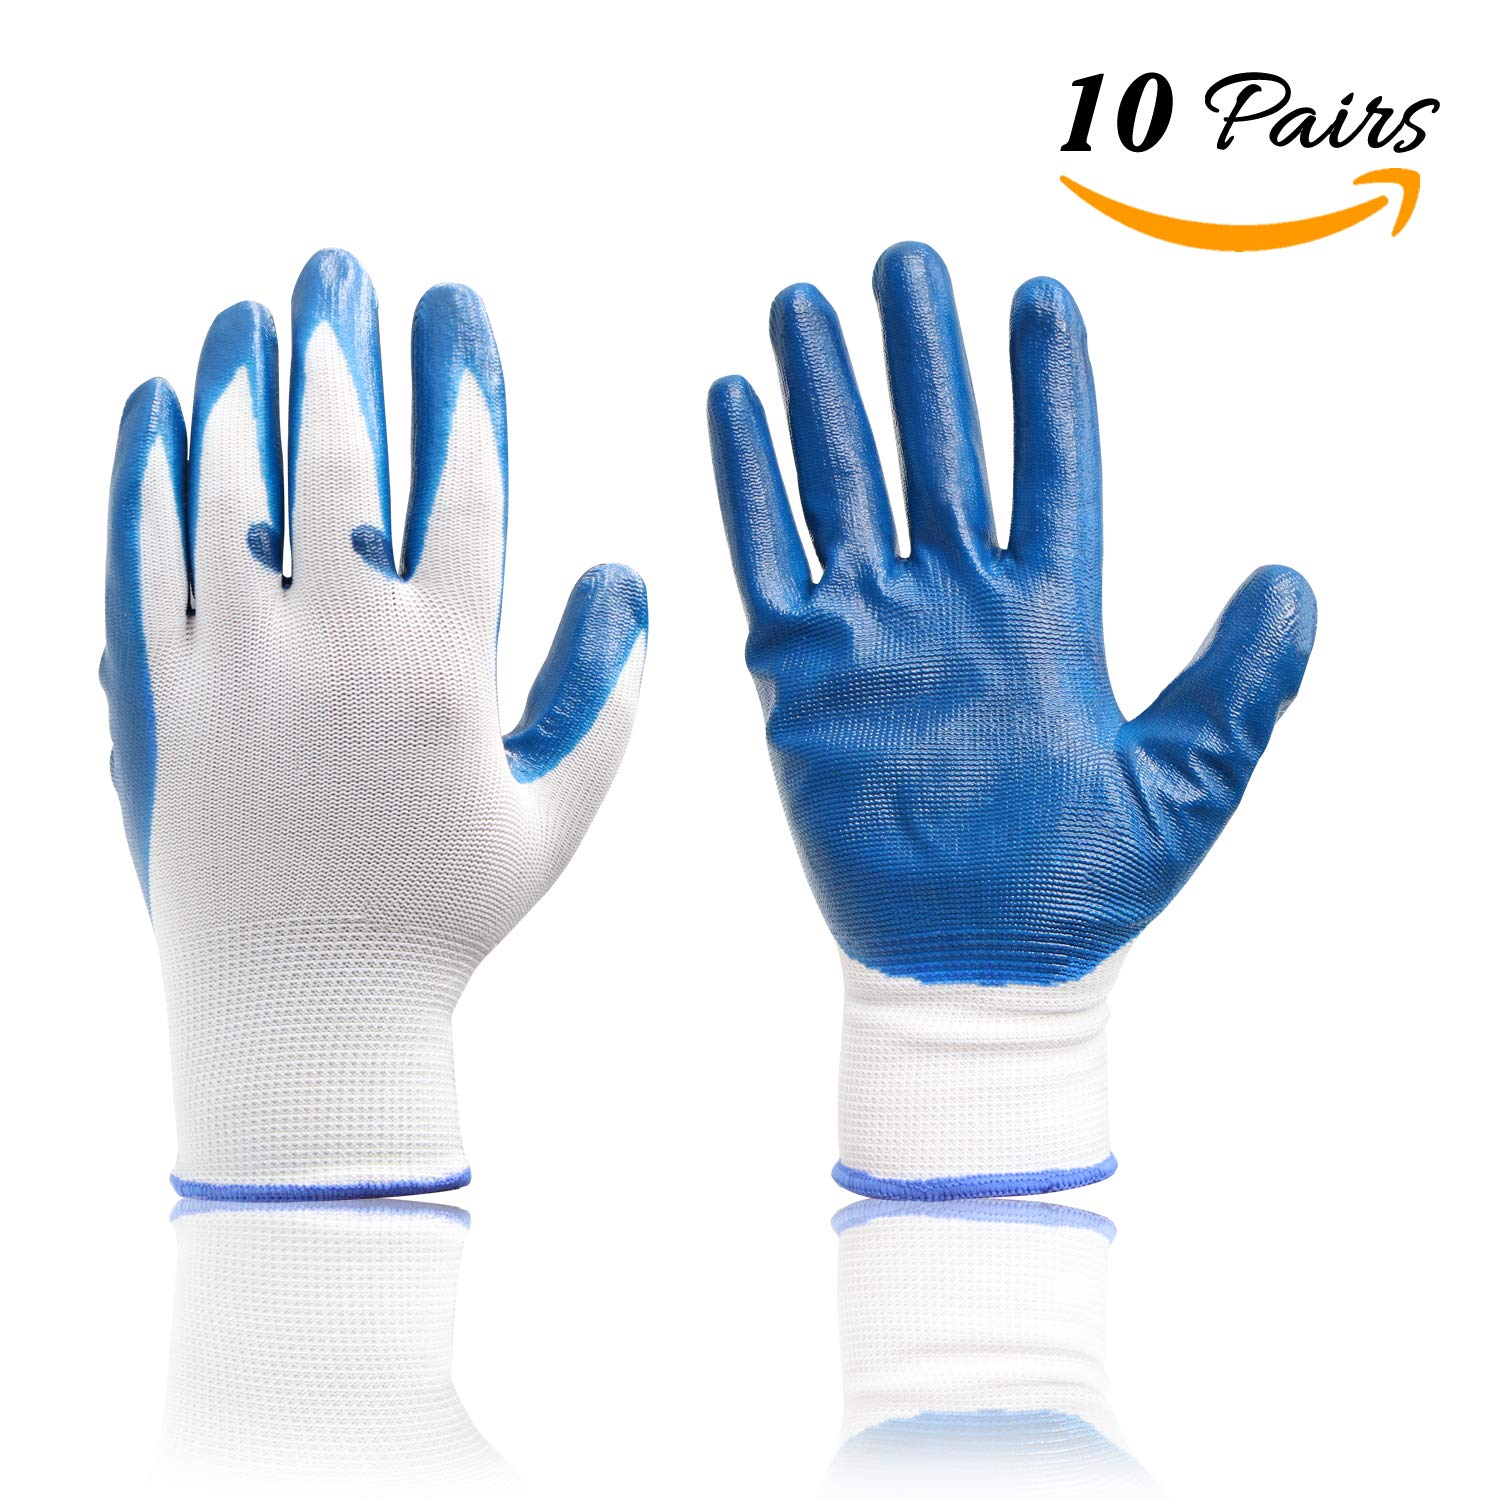 Multifunctional Palm Coated Work Gloves for Gardening Landscaping Clamming, Reusable and Washable, 10 Pairs for Women and Men by FATHER.SON